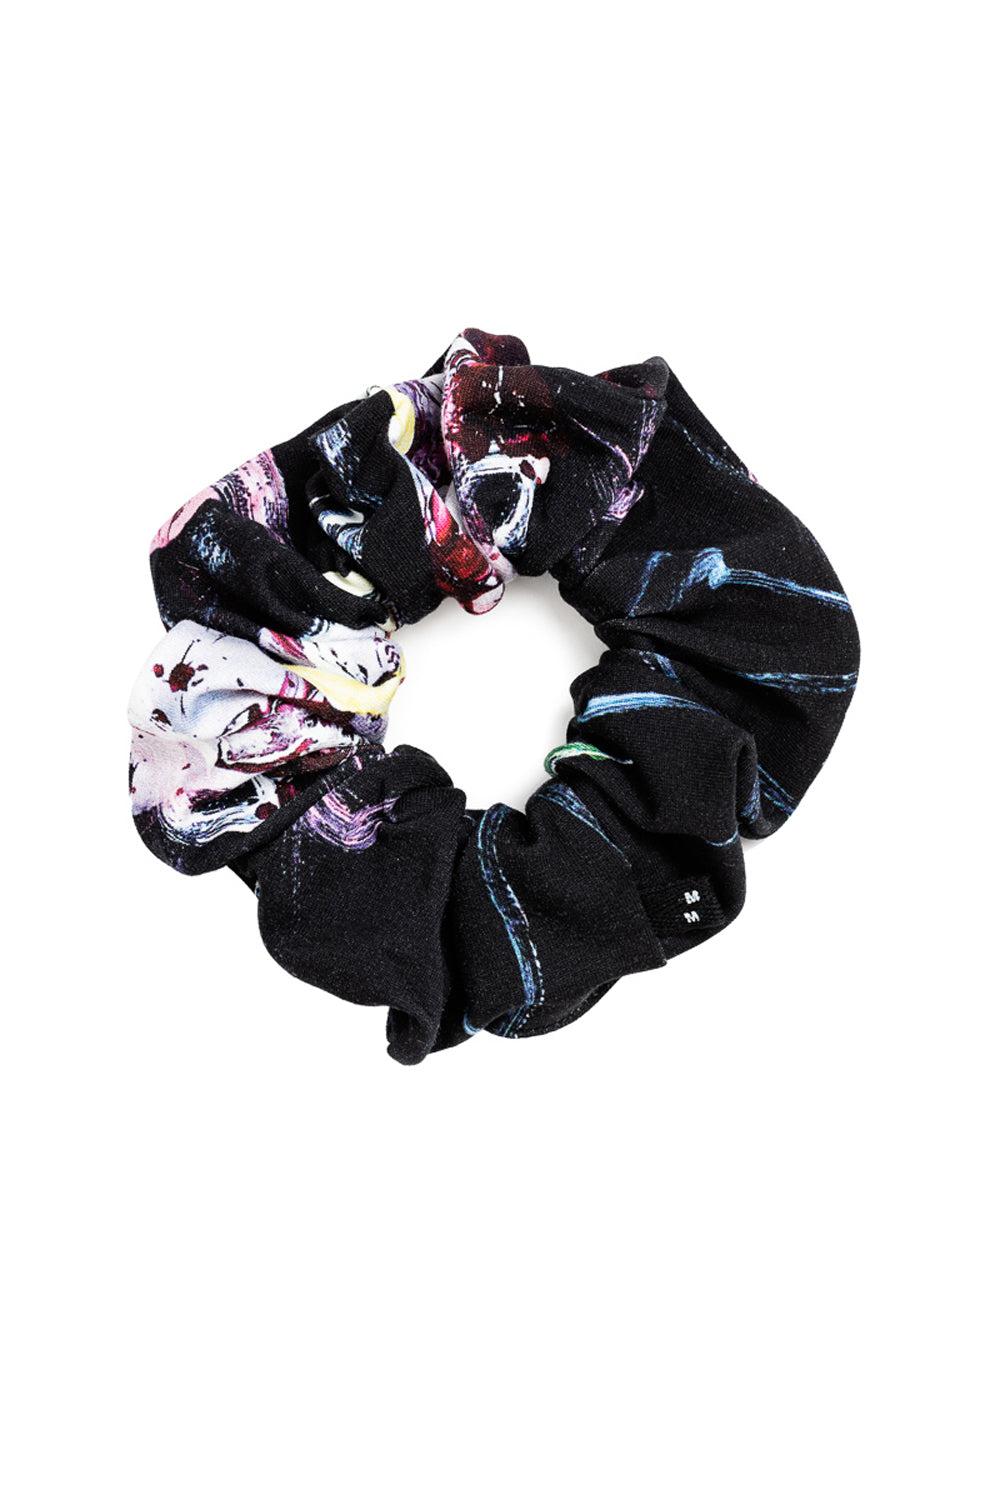 Mirkka Metsola Sustainable Unique Hairscrunchie